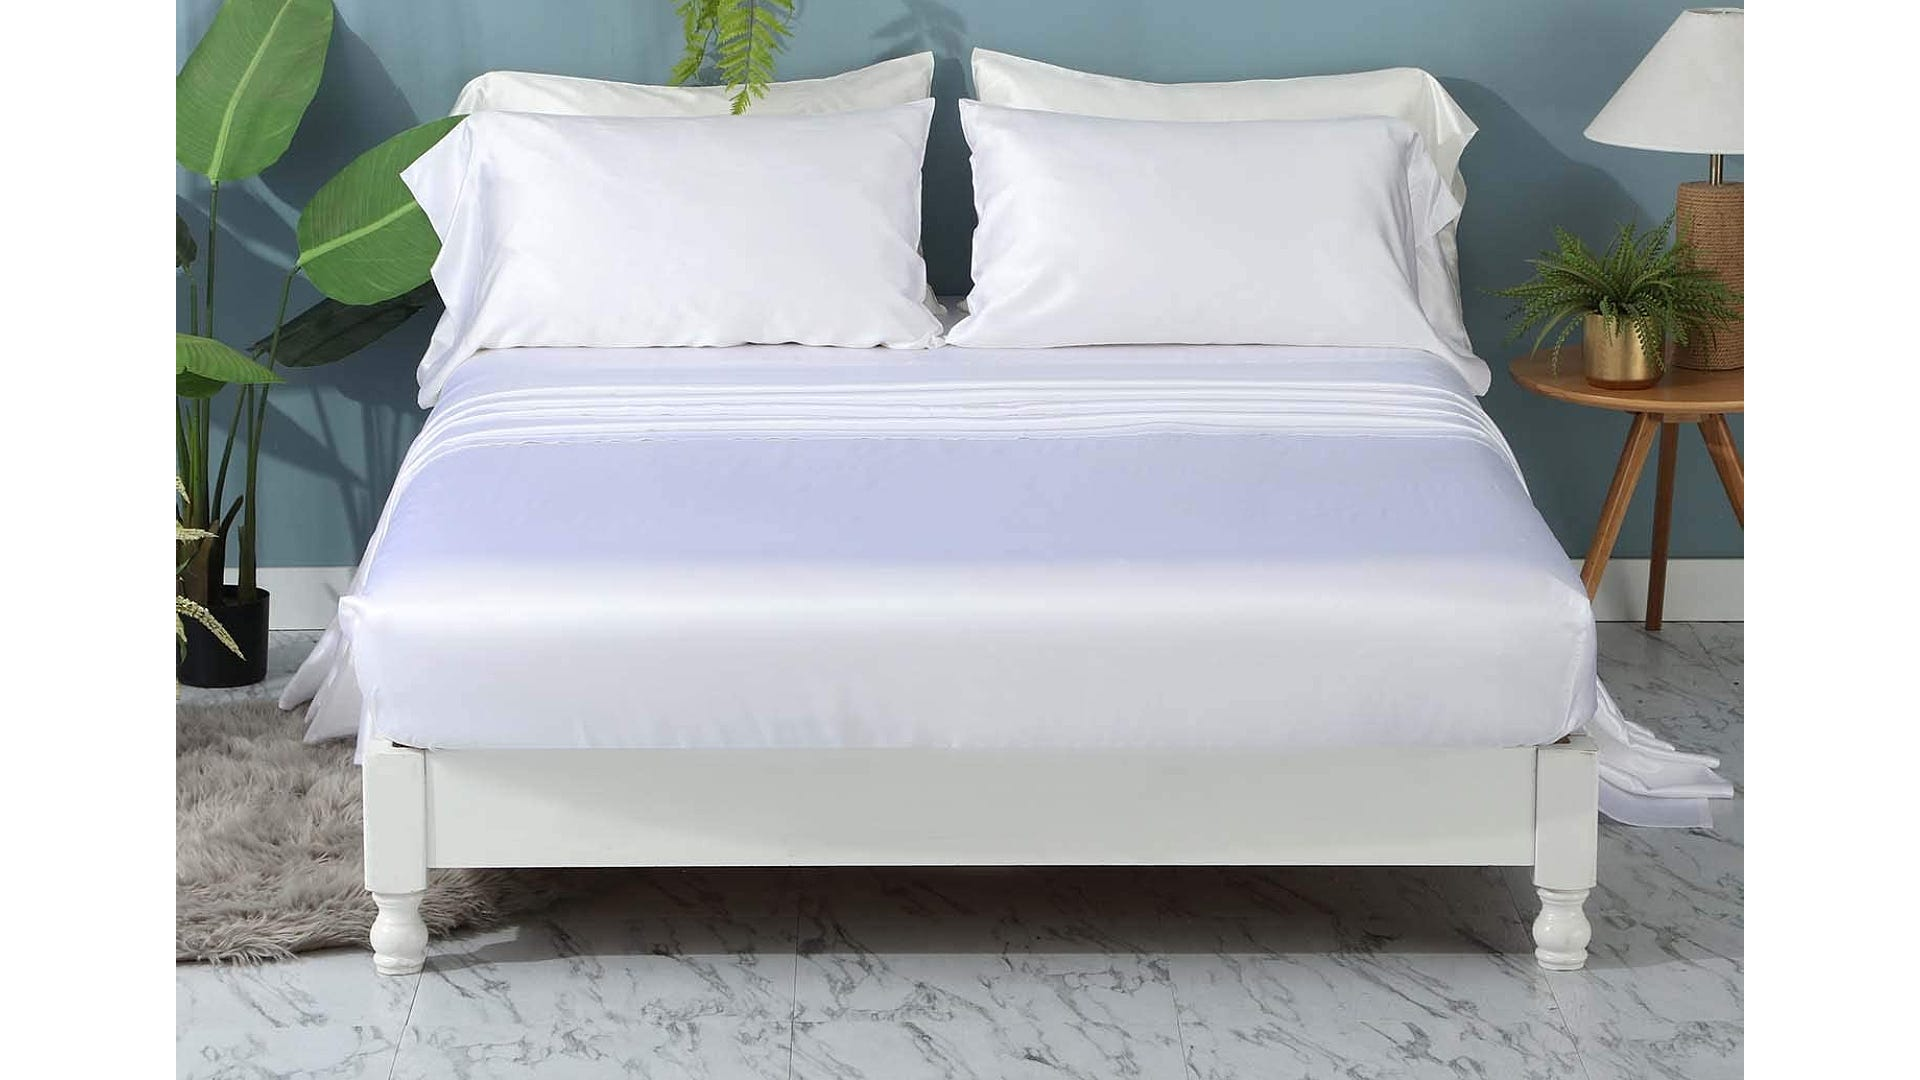 white silk sheets on white bed in bedroom